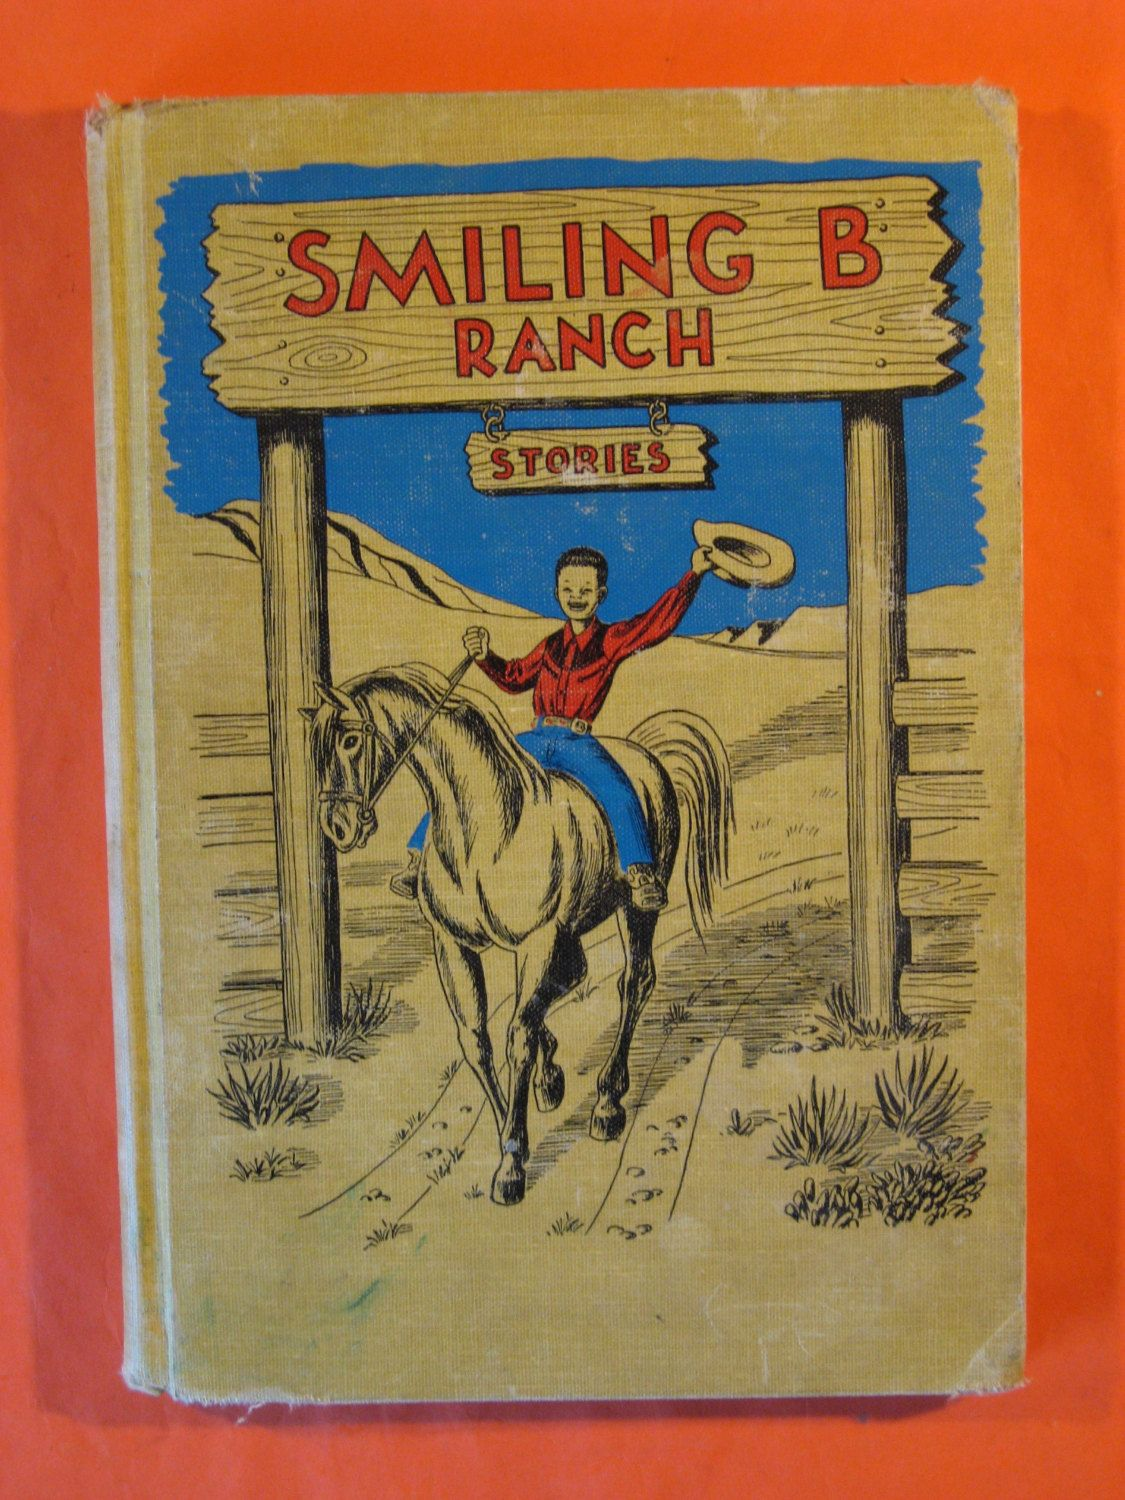 Smiling B Ranch Stories by Inas Ziegler by Pistilbooks on Etsy